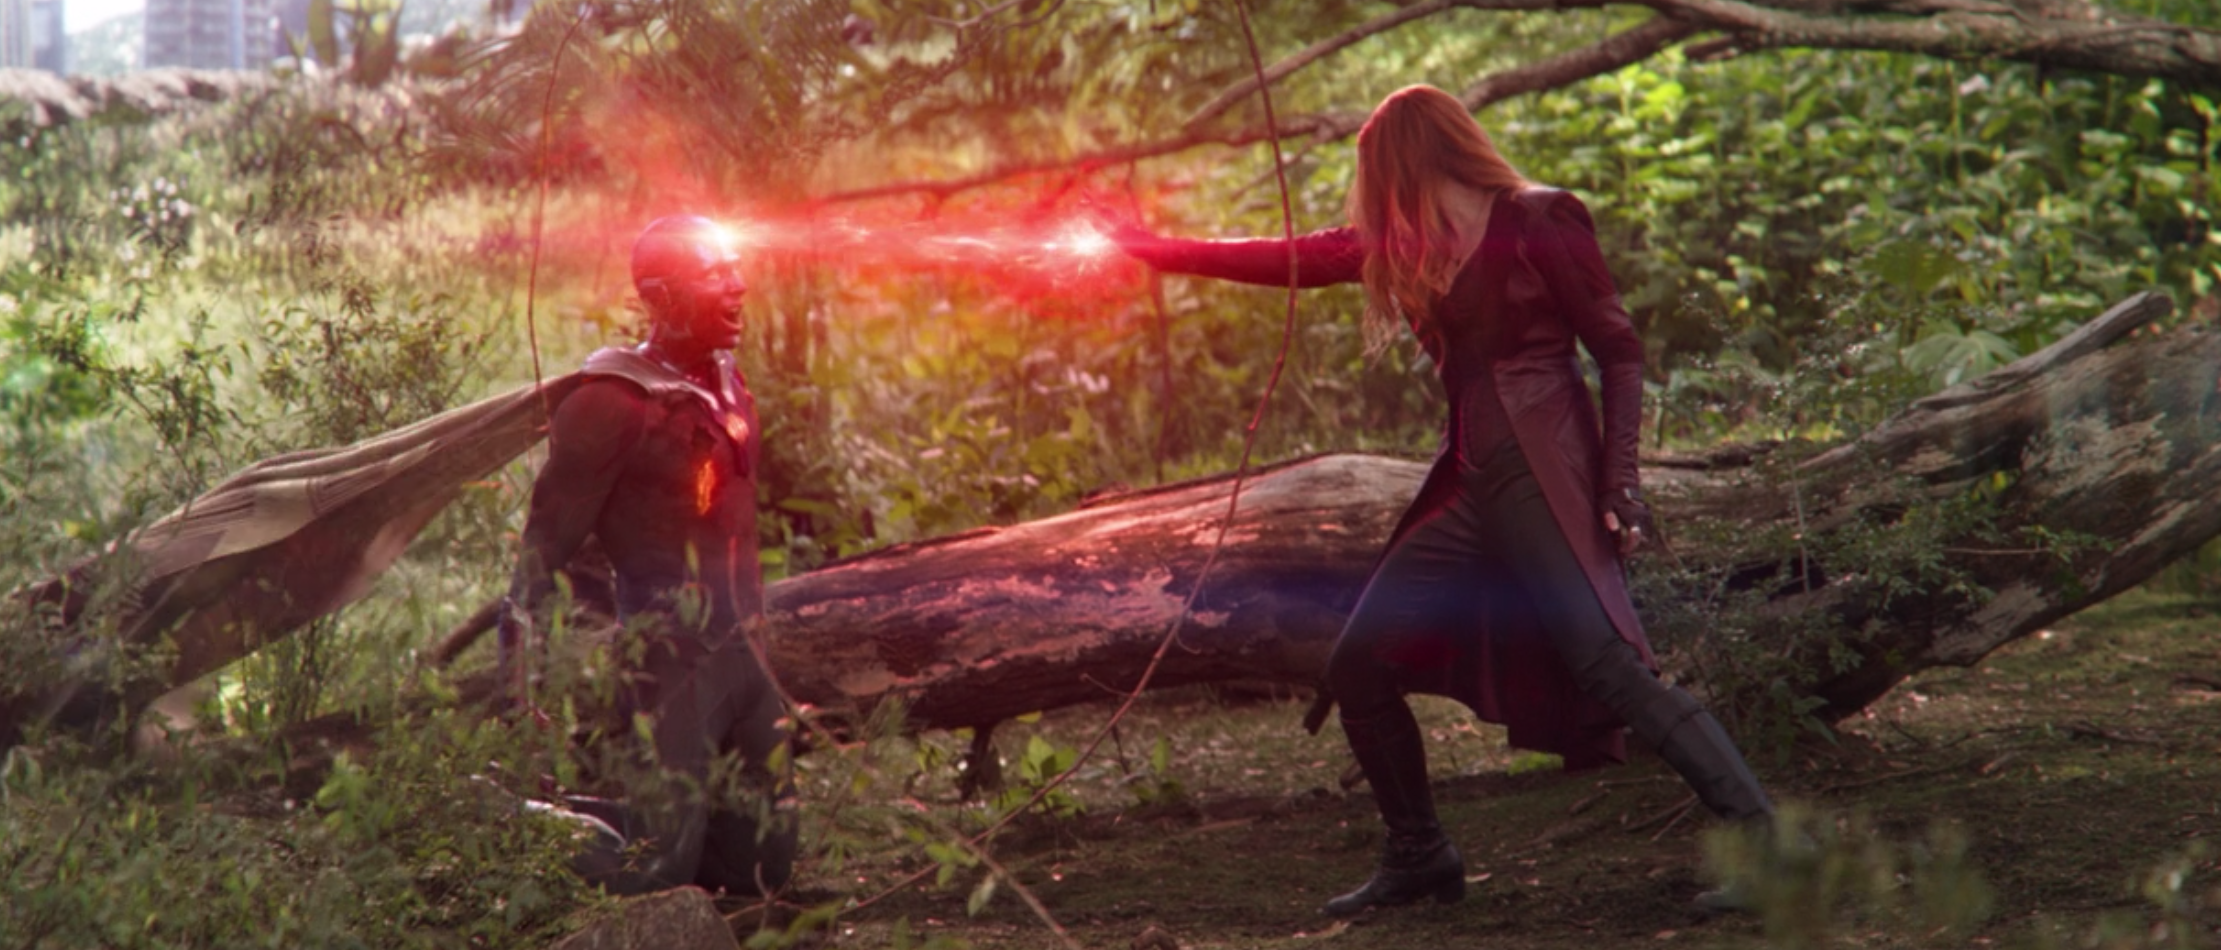 Wanda Maximoff stands with her arm outstretched and magic flowing out of her hand into the Infinity Stone located in Vision's forehead.